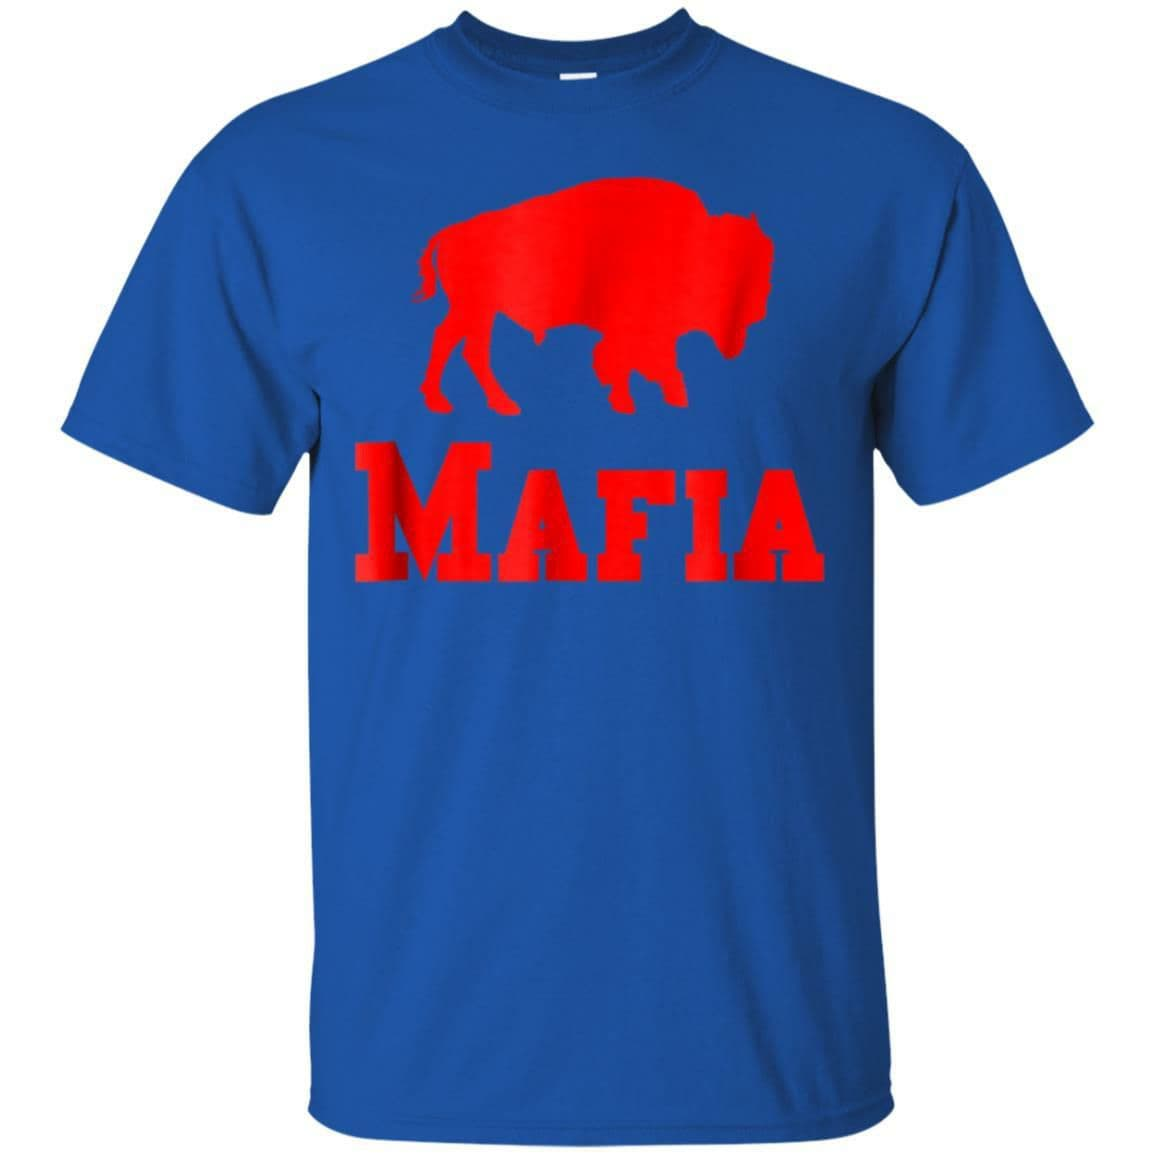 MAFIA NEW TSHIRT 😍😍😍 BUYING SOURCE :   #BuffaloBills #BillsMafia #billsnation #billsgeard #afcchampionship #NFL #NHL #Bills #Mafia #johnallen